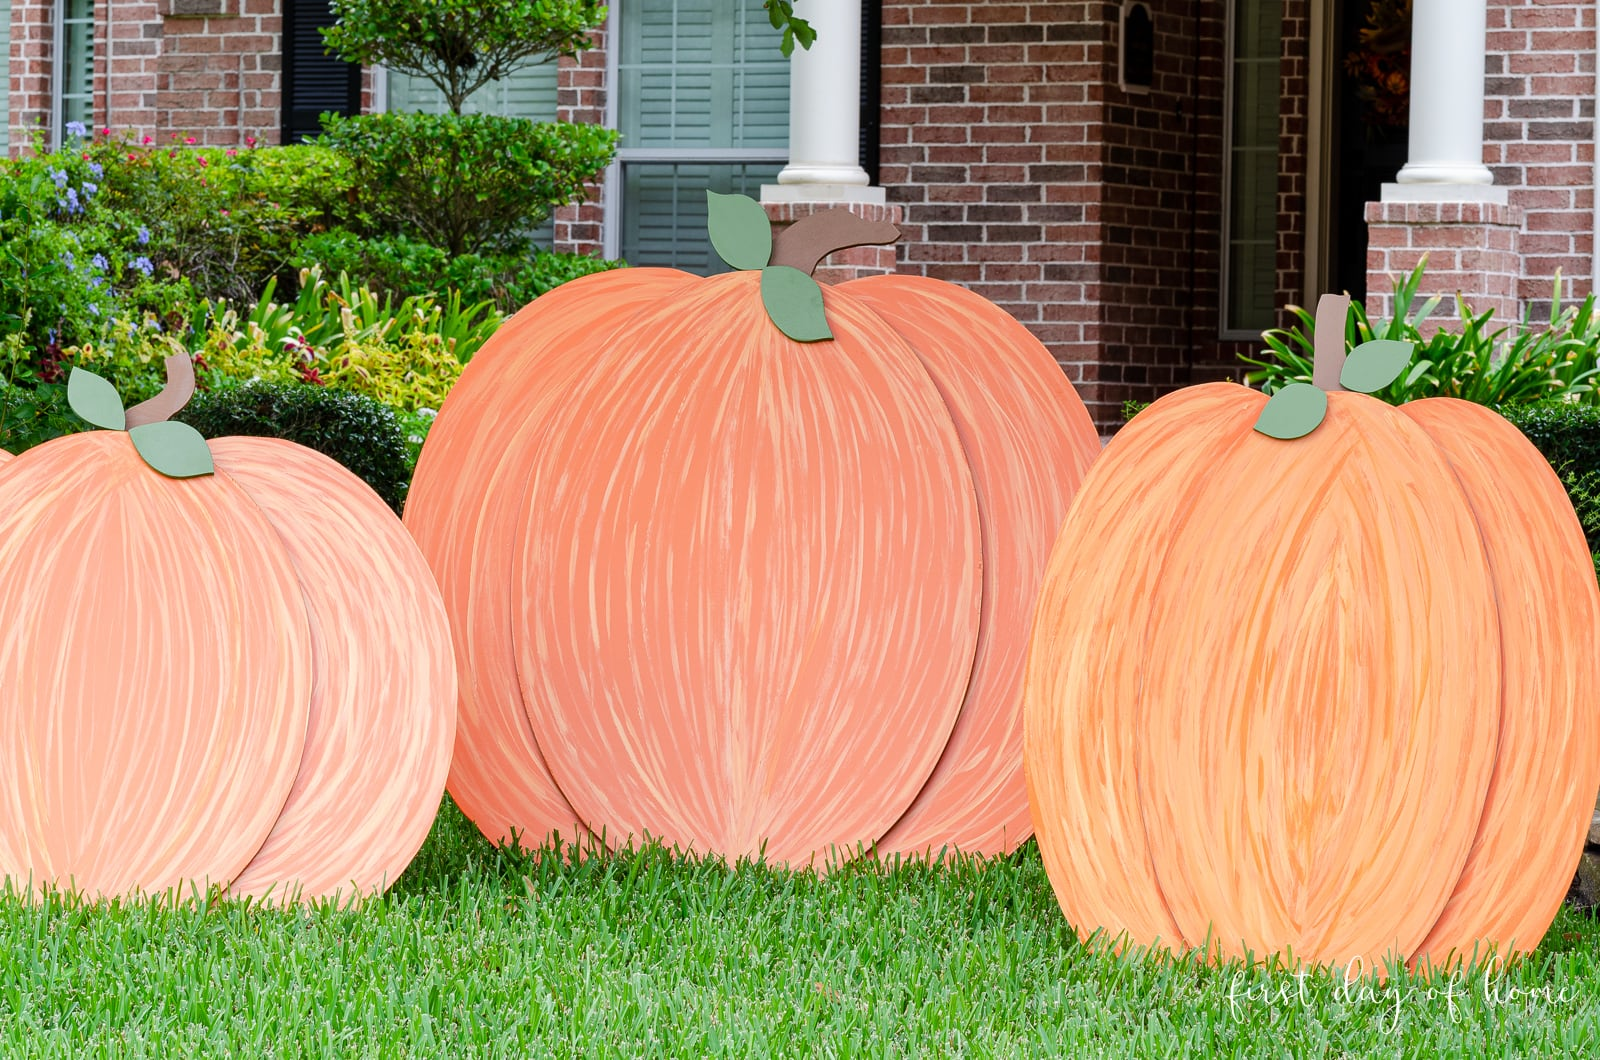 Painted wooden pumpkins on front yard